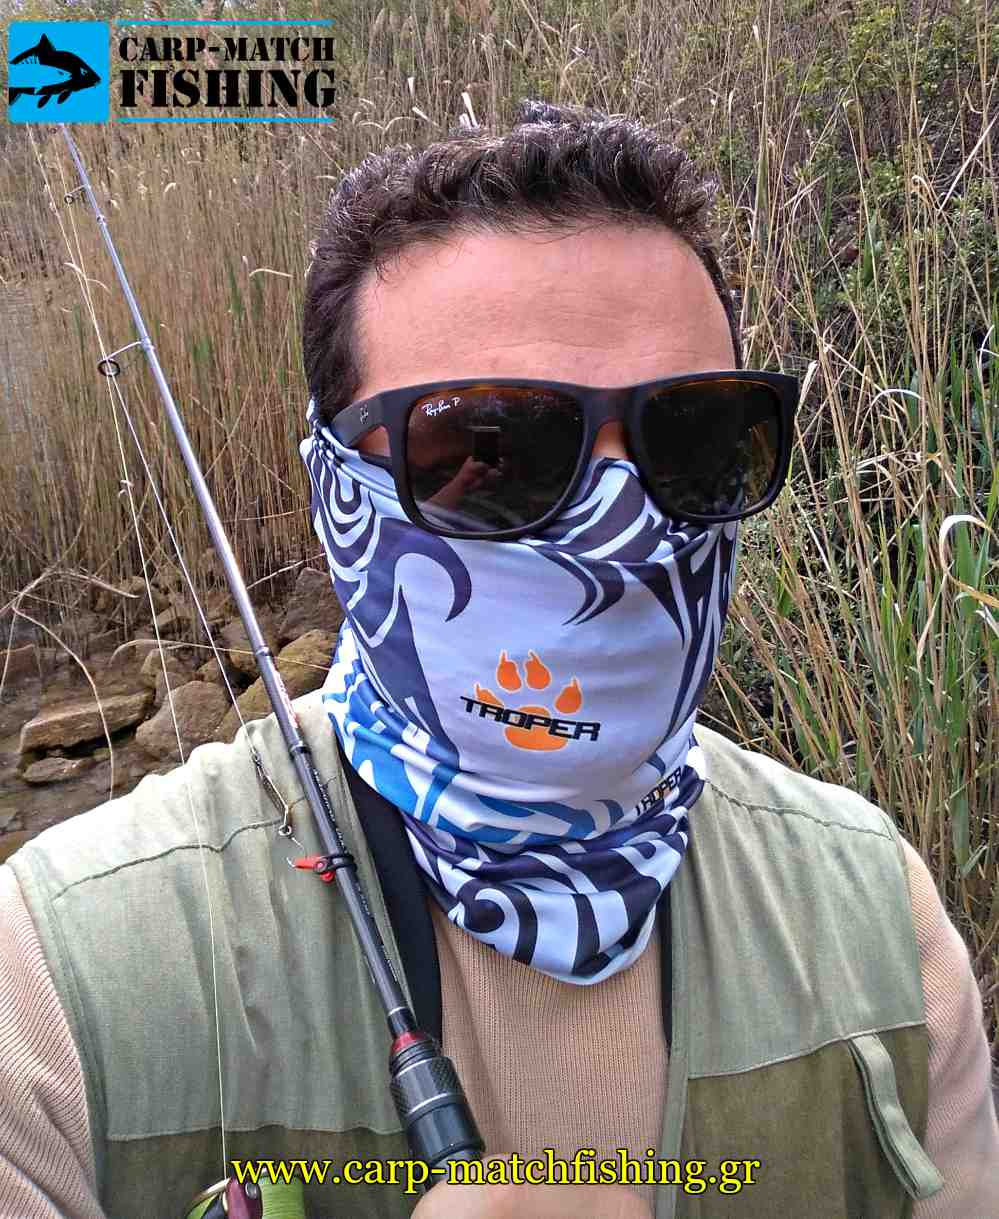 tribal bandana tube alpine thermal carpmatchfishing